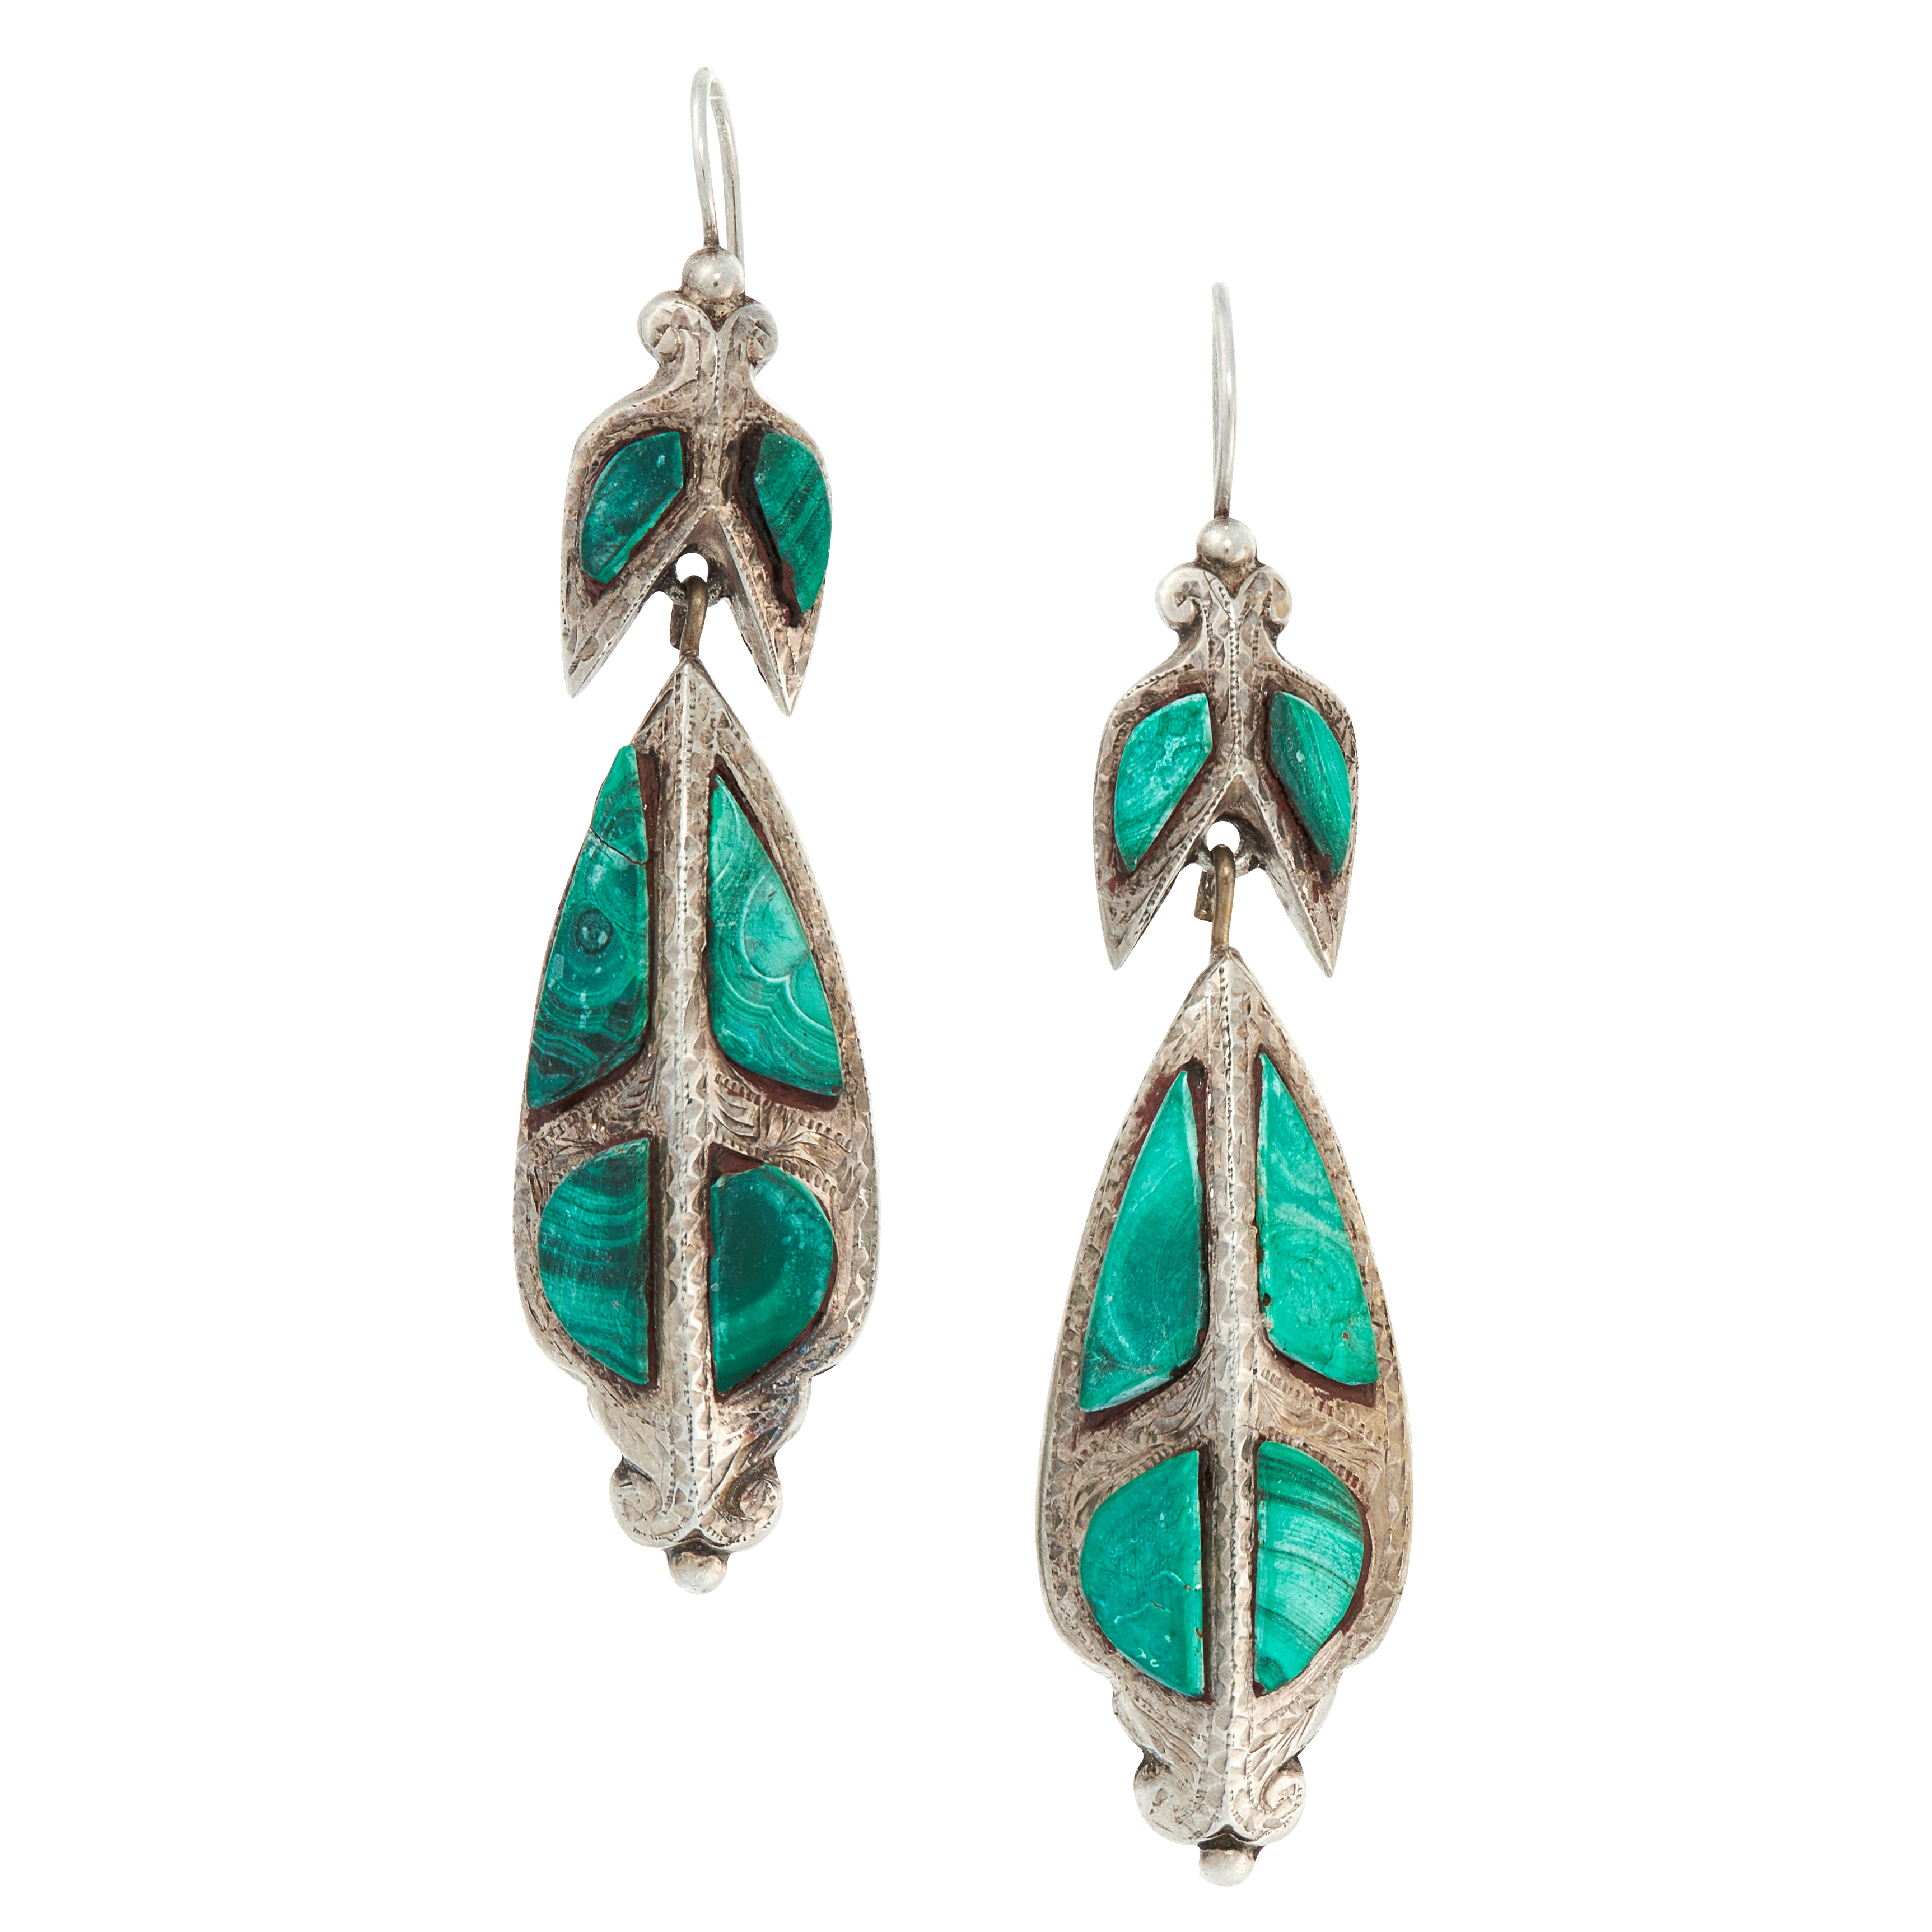 A PAIR OF ANTIQUE SCOTTISH MALACHITE DROP EARRINGS in sterling silver, the articulated bodies formed